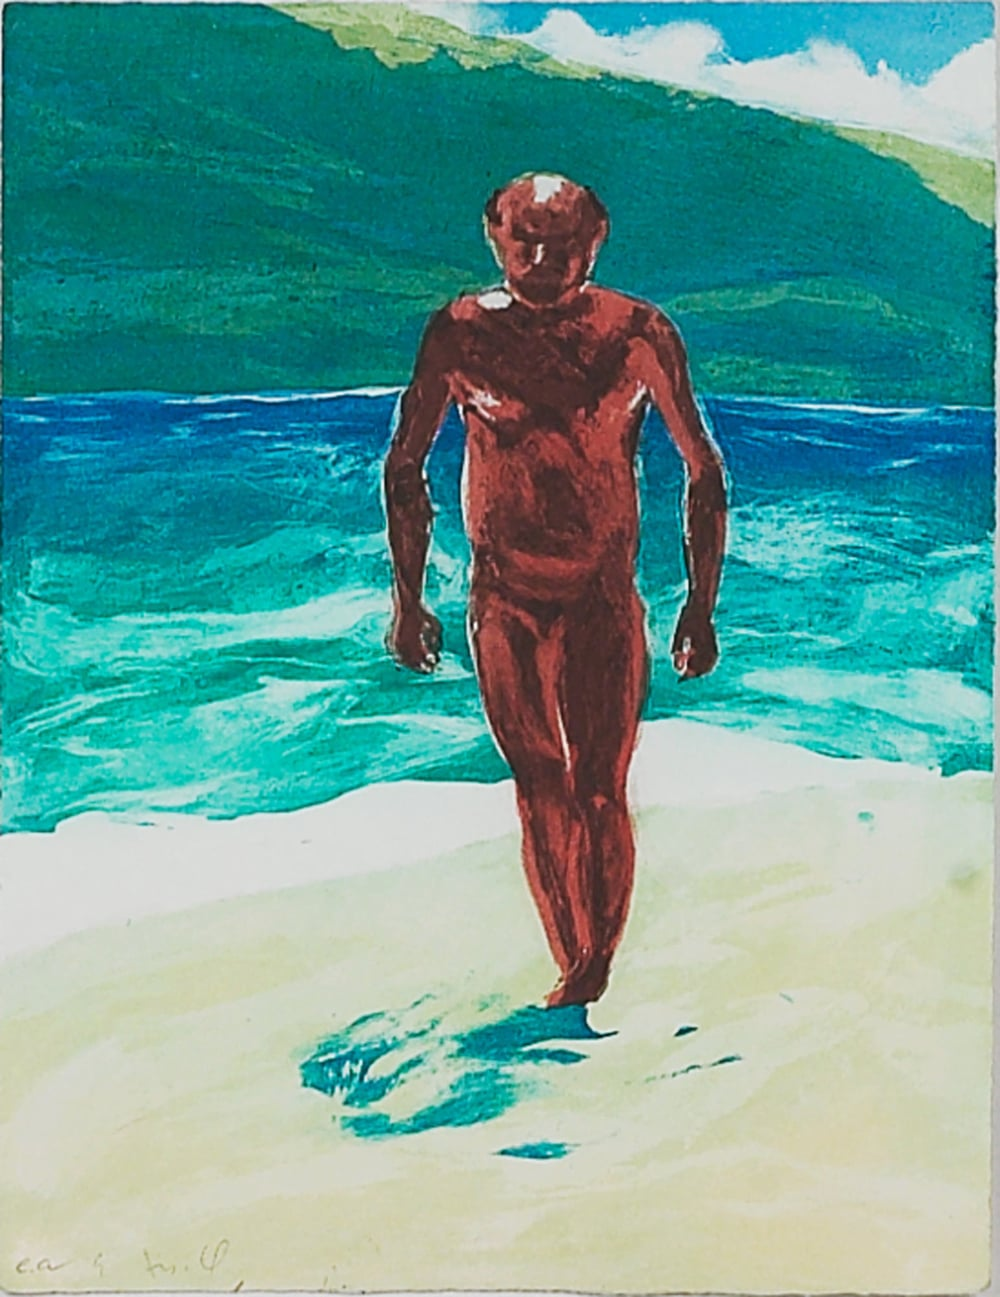 Untitled (Man Walking)